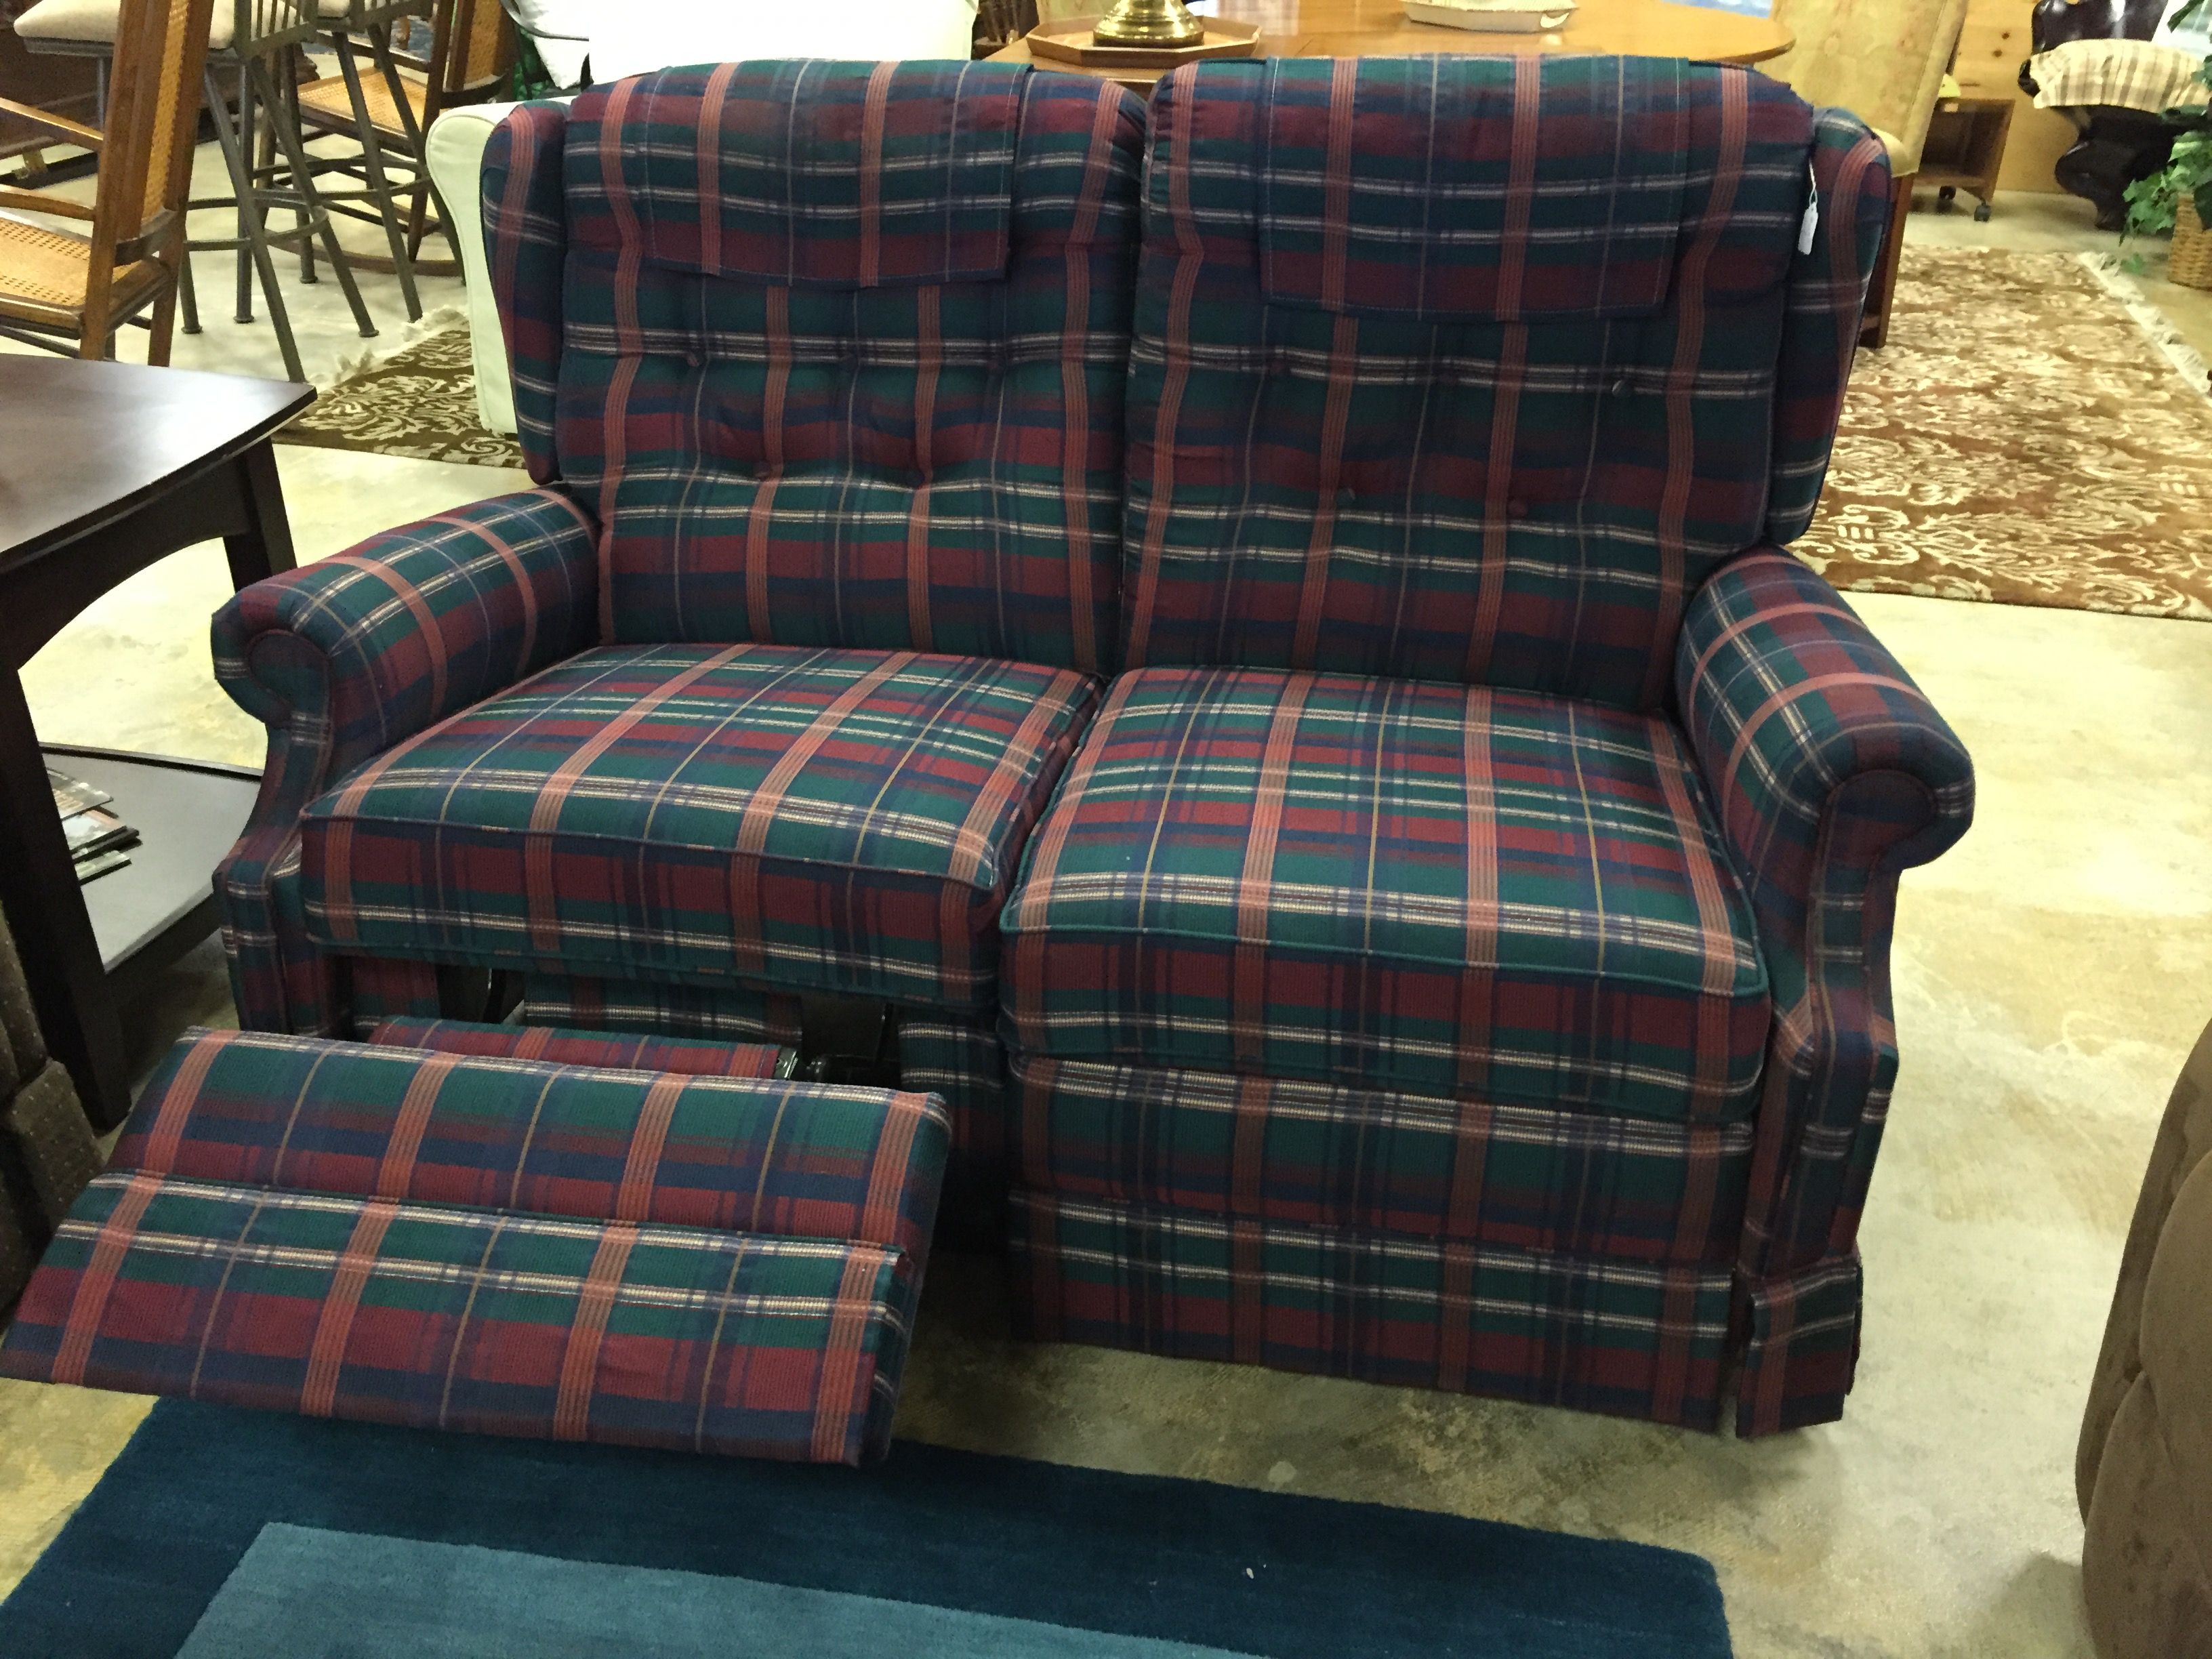 Plaid Lazy Boy Loveseat 195 Forsale Mk Consignment Loveseat Livingroom Furniture Decor